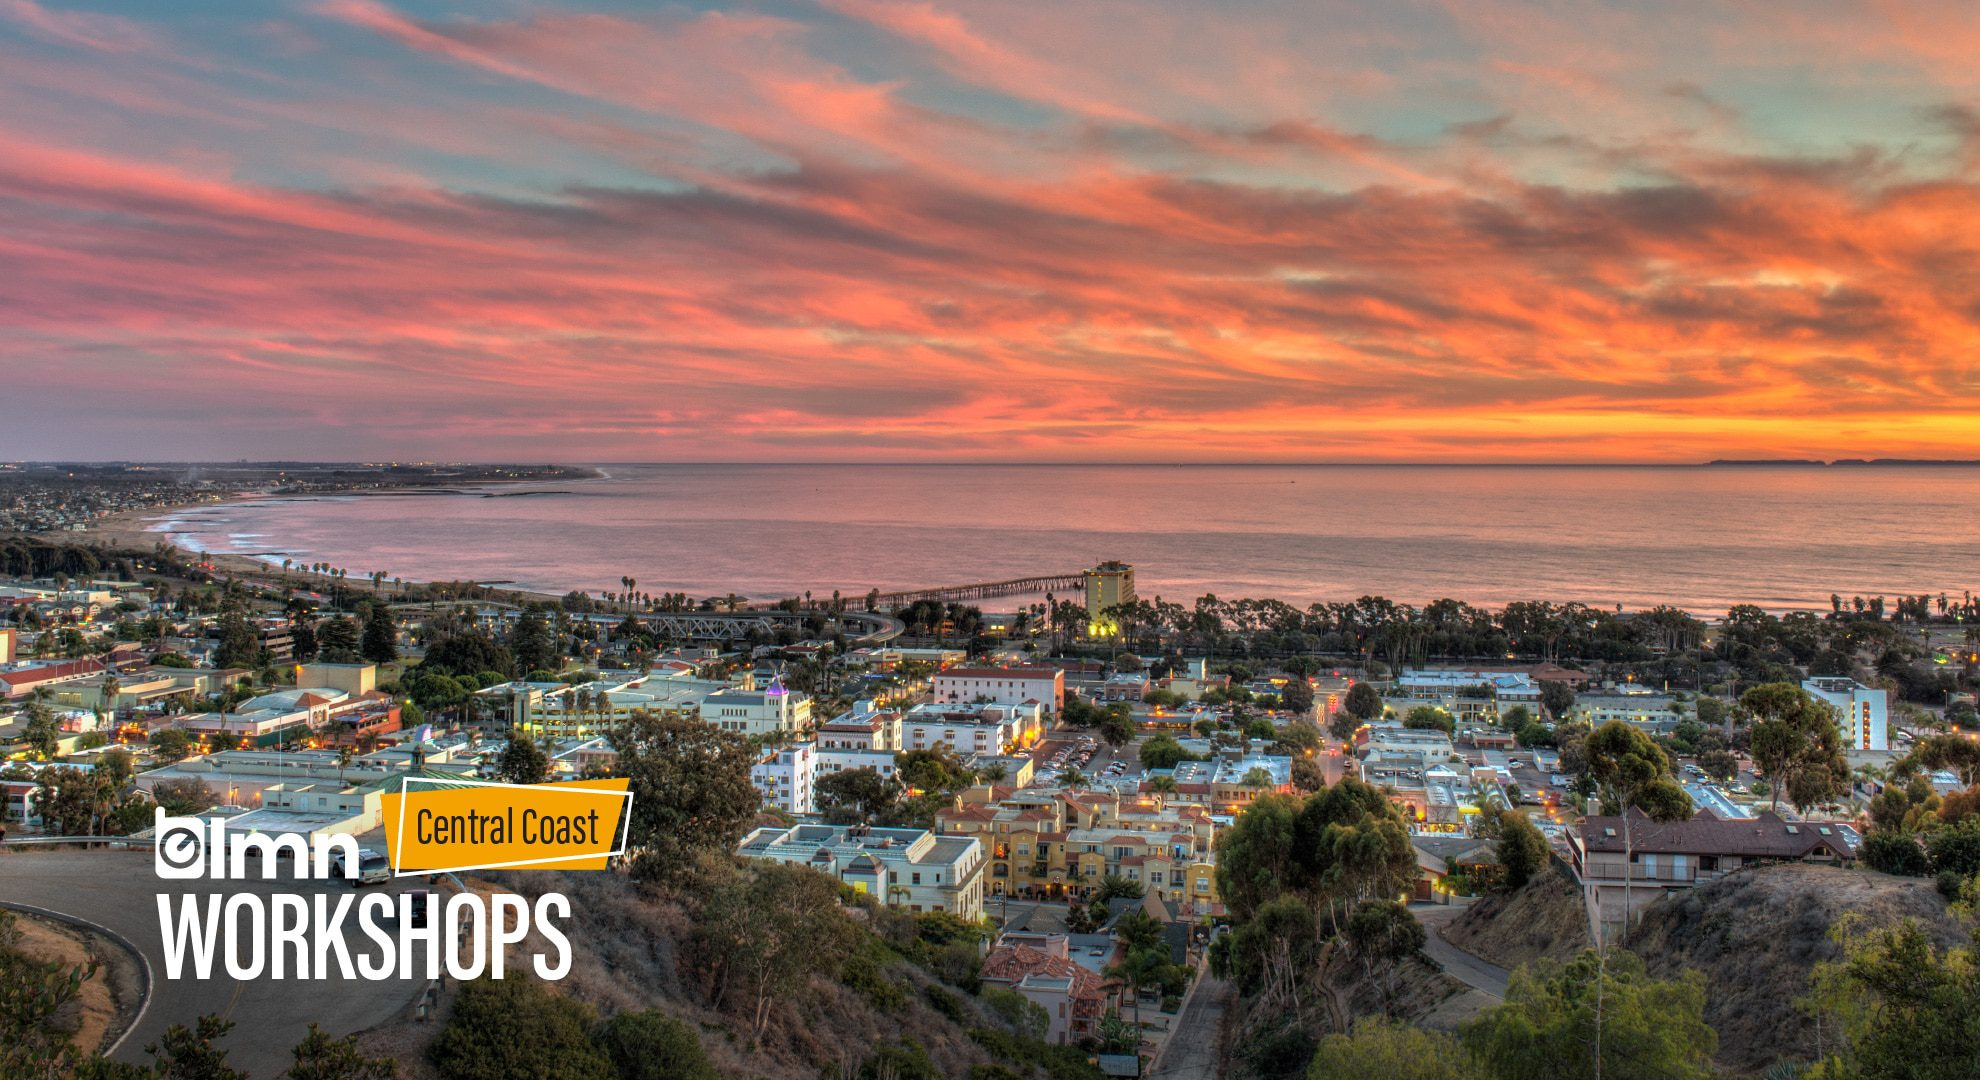 Workshops - Central Coast California